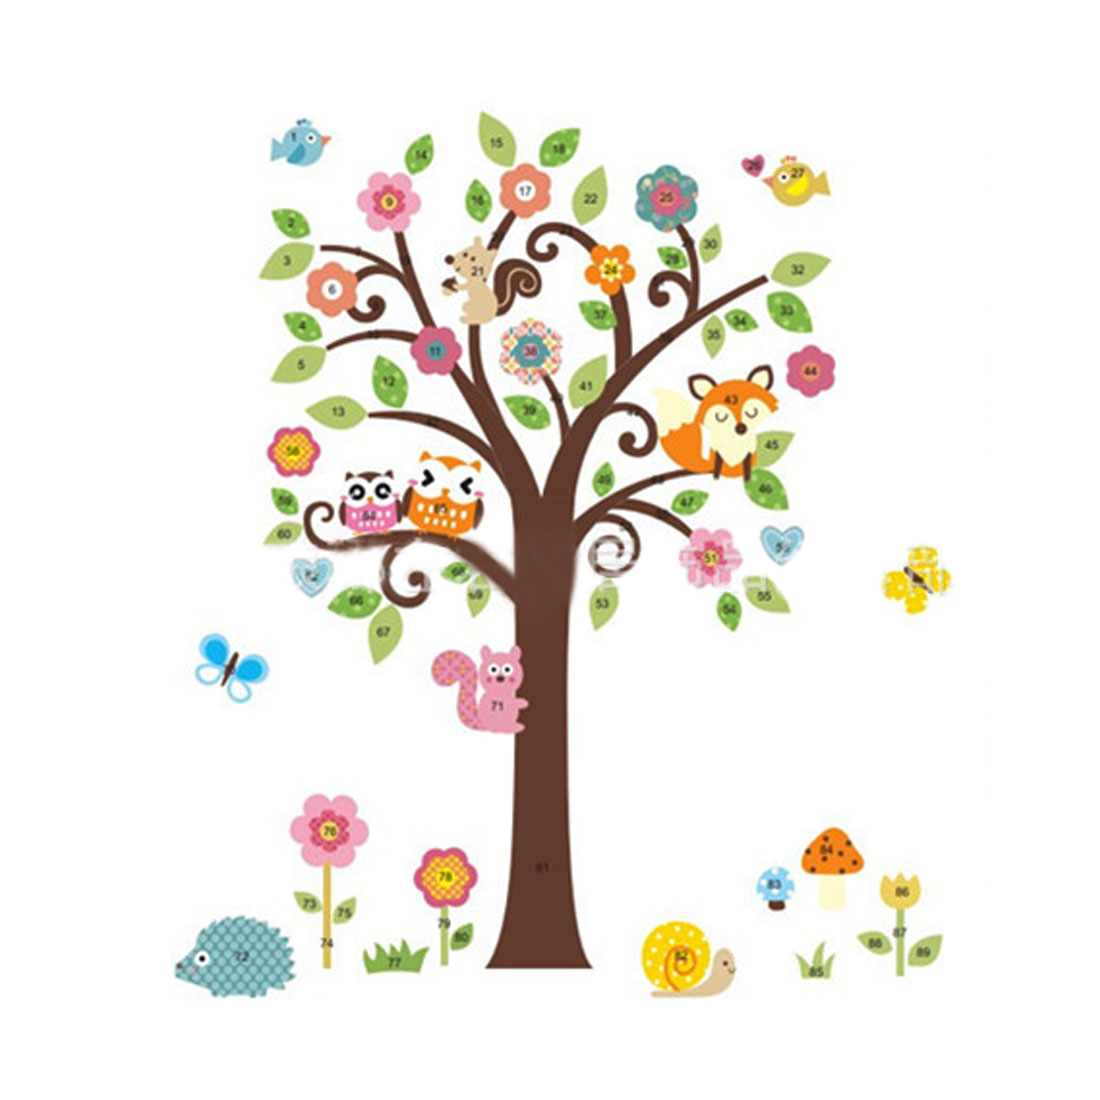 Home Decor Colorful DIY Removable PVC Cartoon Animal Tree Wall Sticker Decal 1.15x1.35m